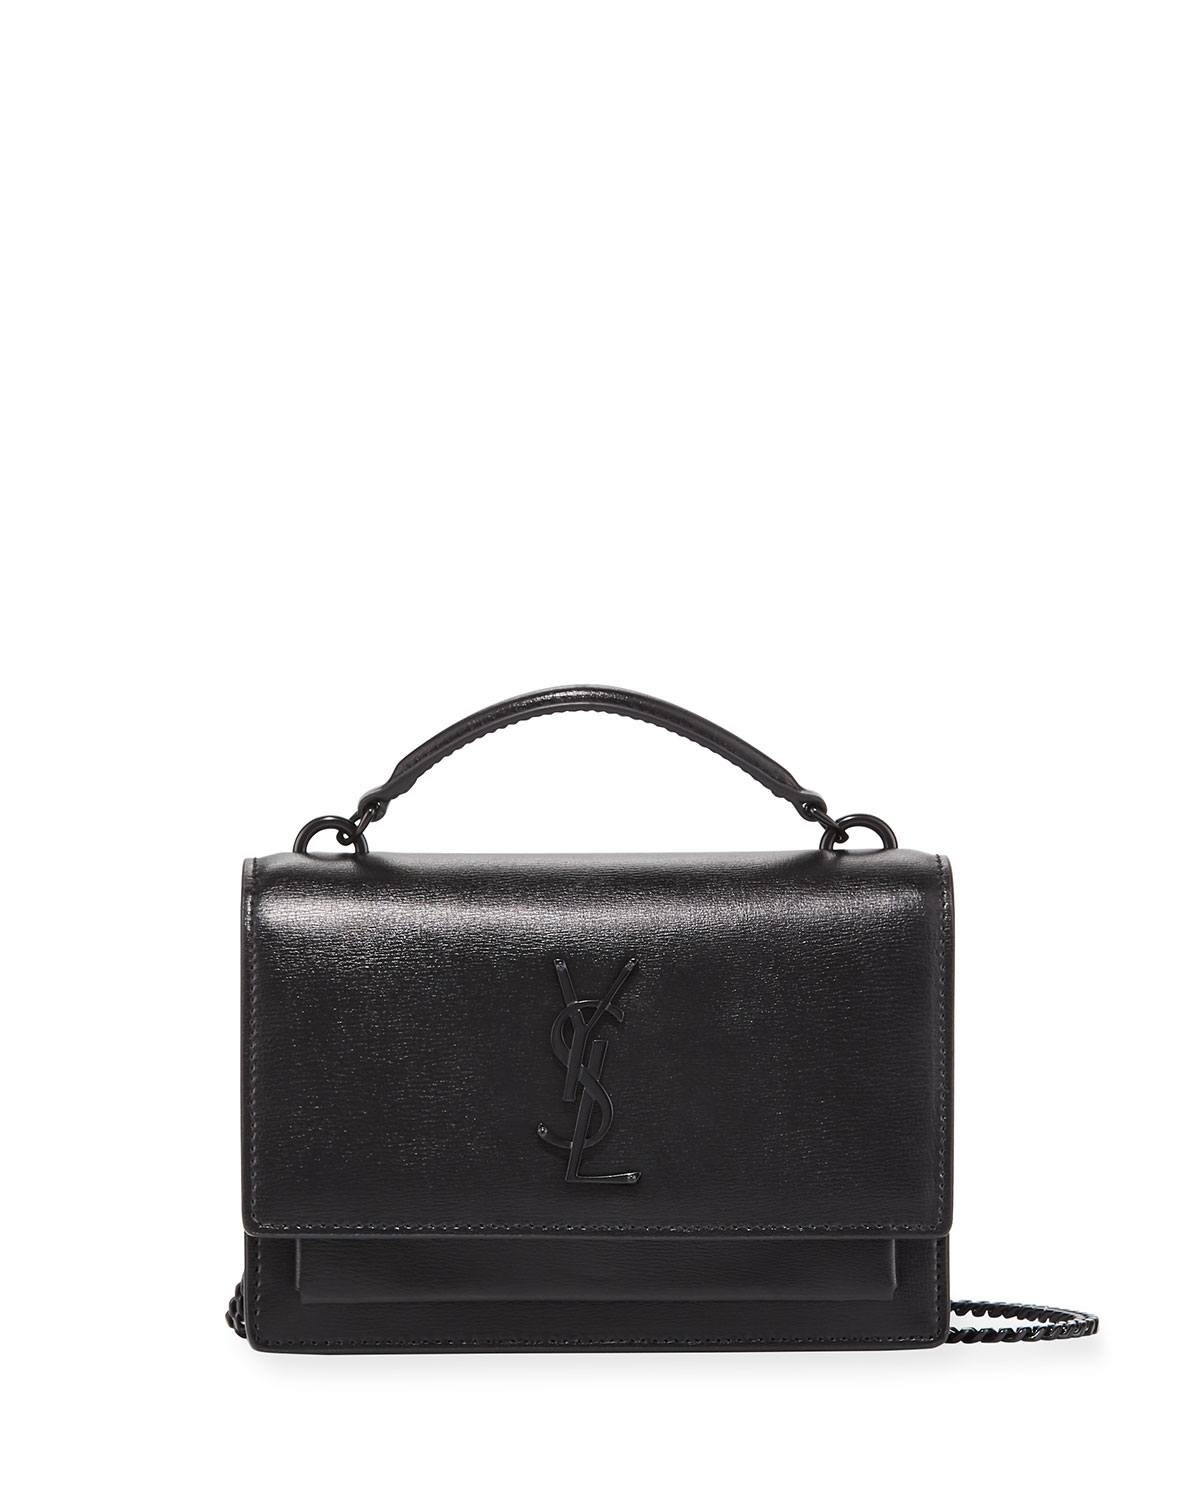 329c20c645 Saint Laurent Sunset YSL Monogram Wallet on Chain - Black Hardware ...